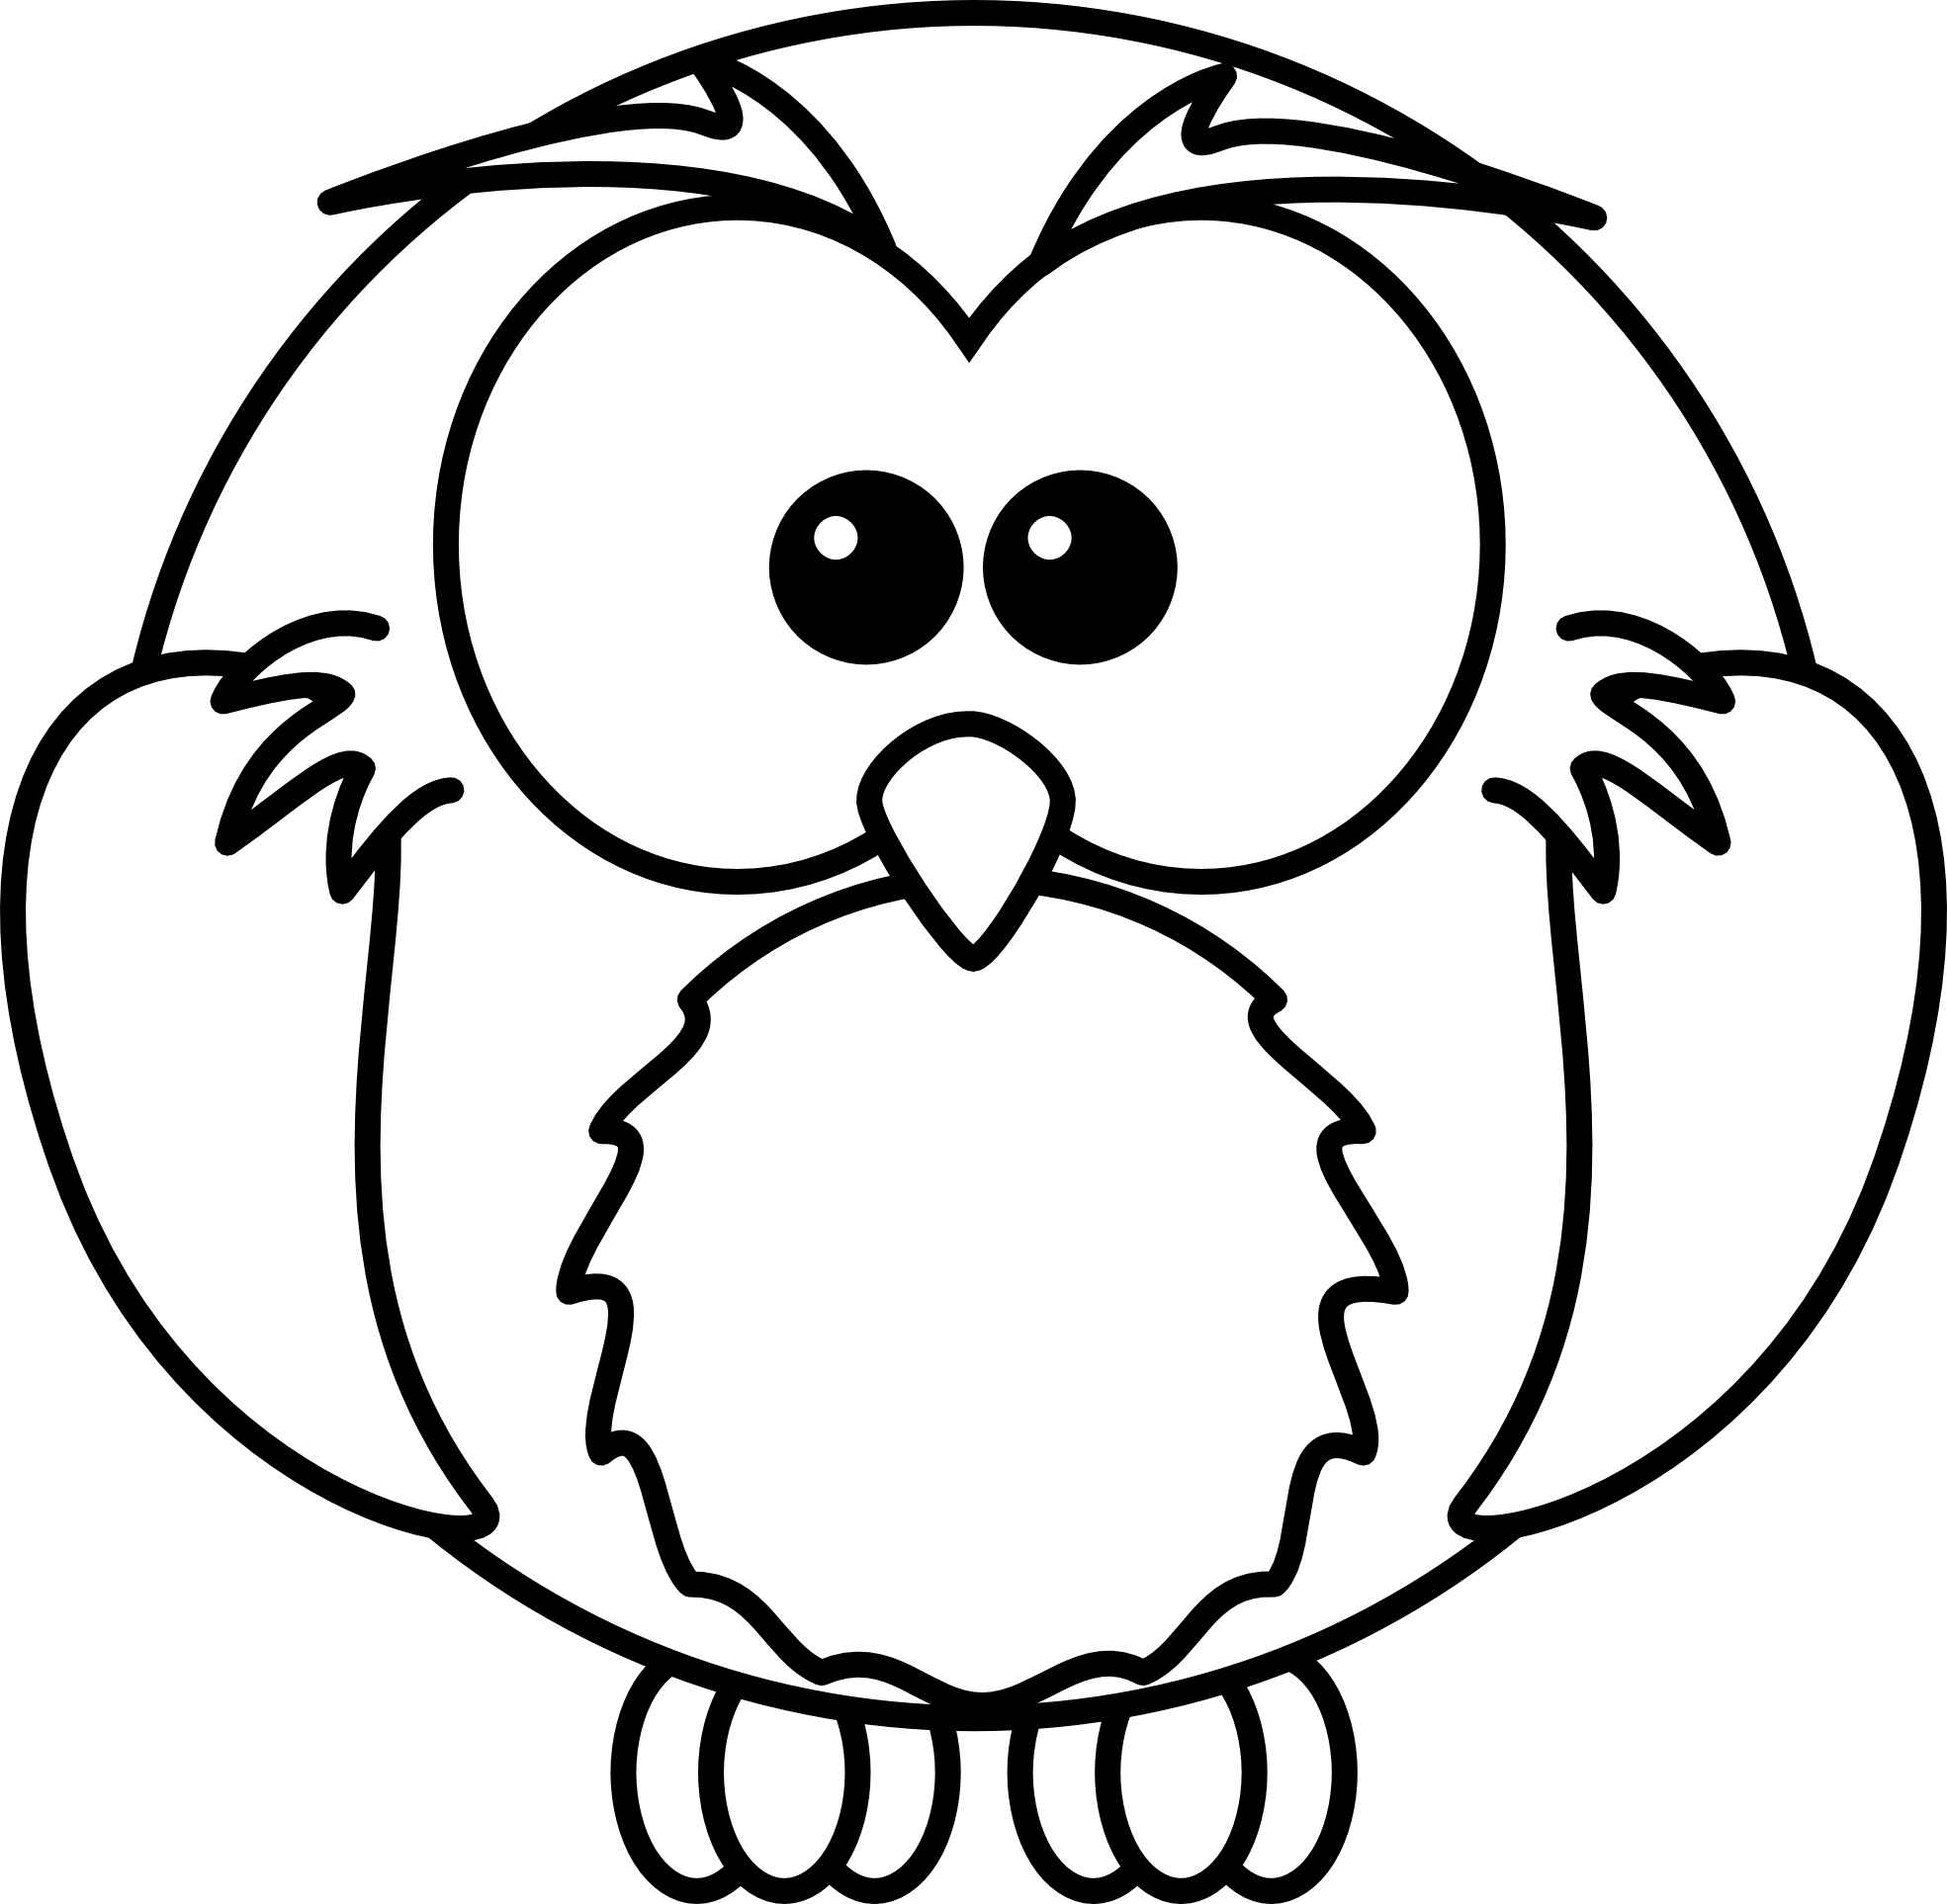 Owlet clipart black and white Images Log Clipart Free Panda